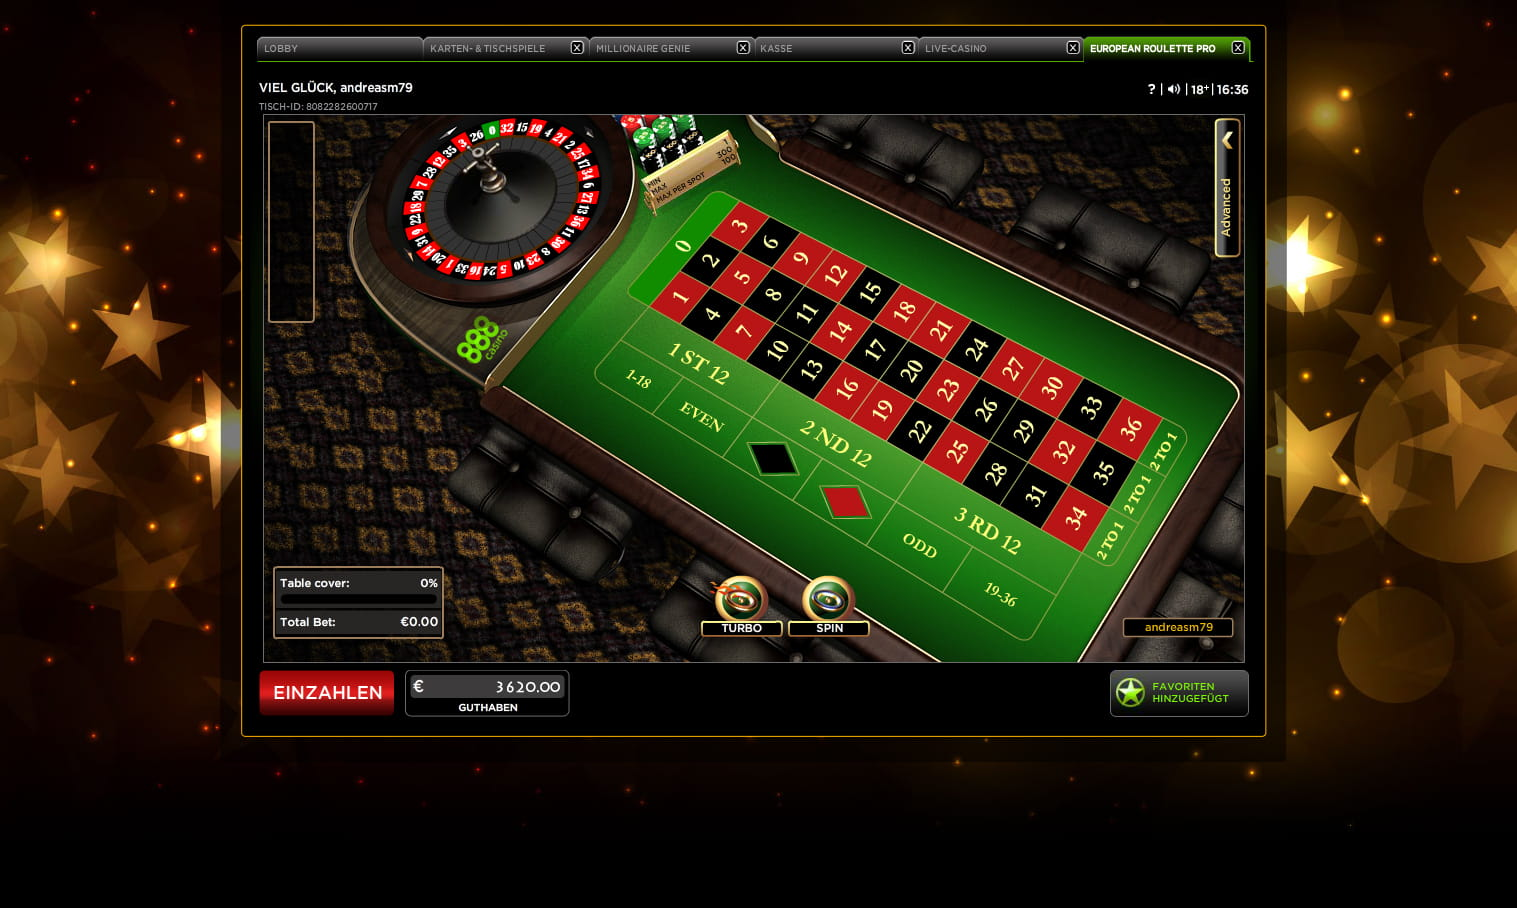 Roulette Tool 888 885537